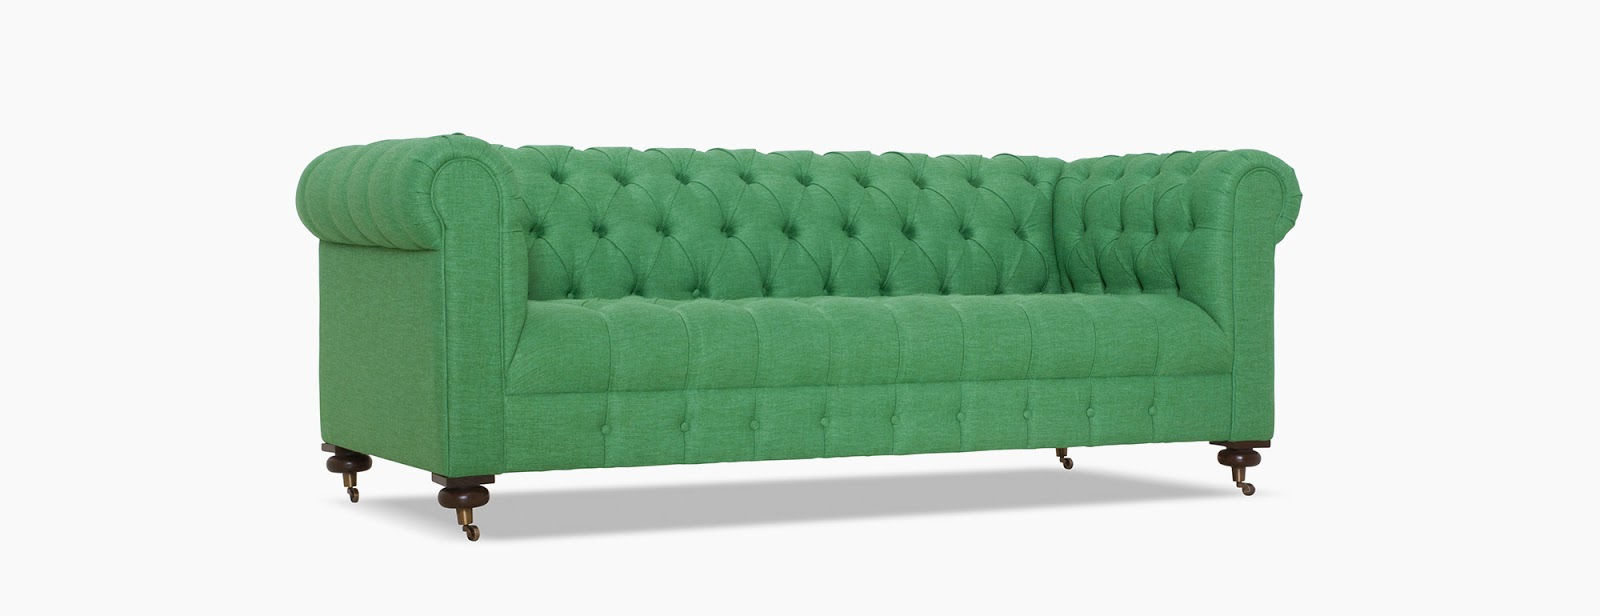 Zsazsa Bellagio Like No Other Home And Garden Accent Green